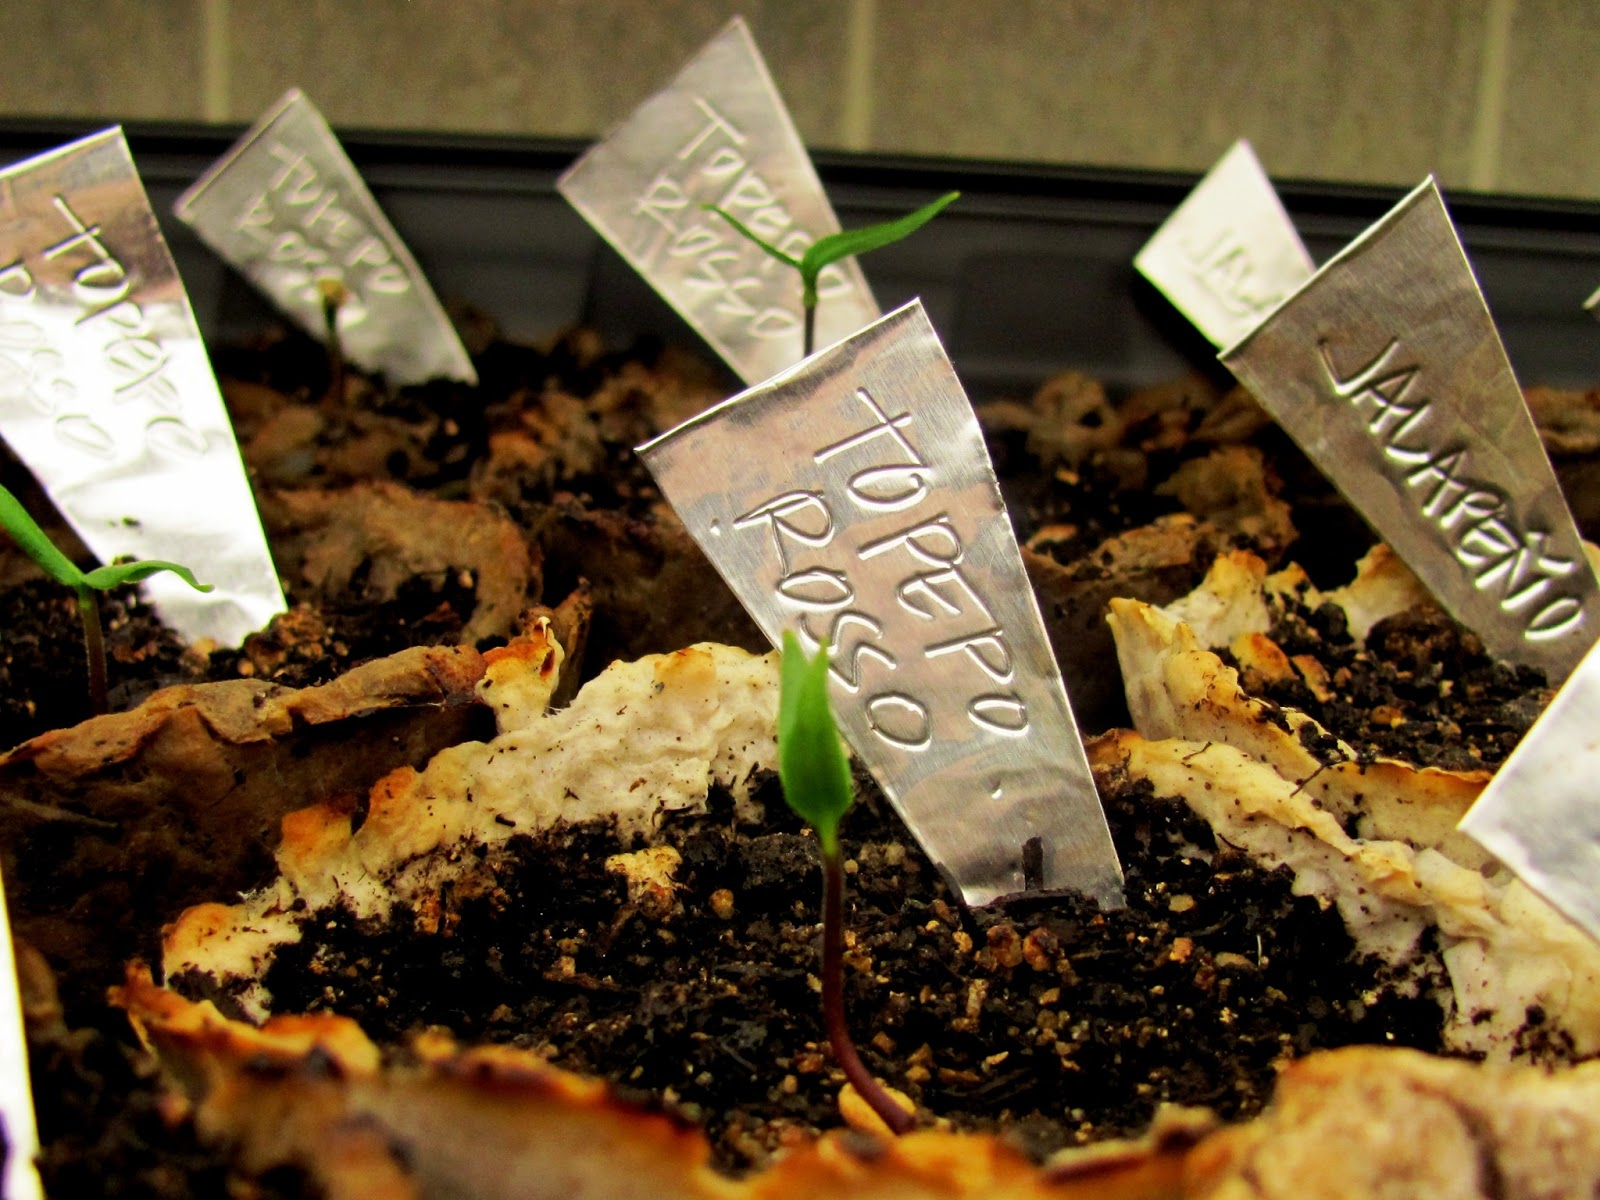 From mymngarden.com - Another way to use aluminum tape as seedling labels..You can make free seedling labels out of all kinds of things. Click to see more ideas for free and cheap labels for your plants. Owning Burton Farm and Misfit Gardening are teamed up for a Frugal Gardening Series. Come see what we're up to and get your garden started!..